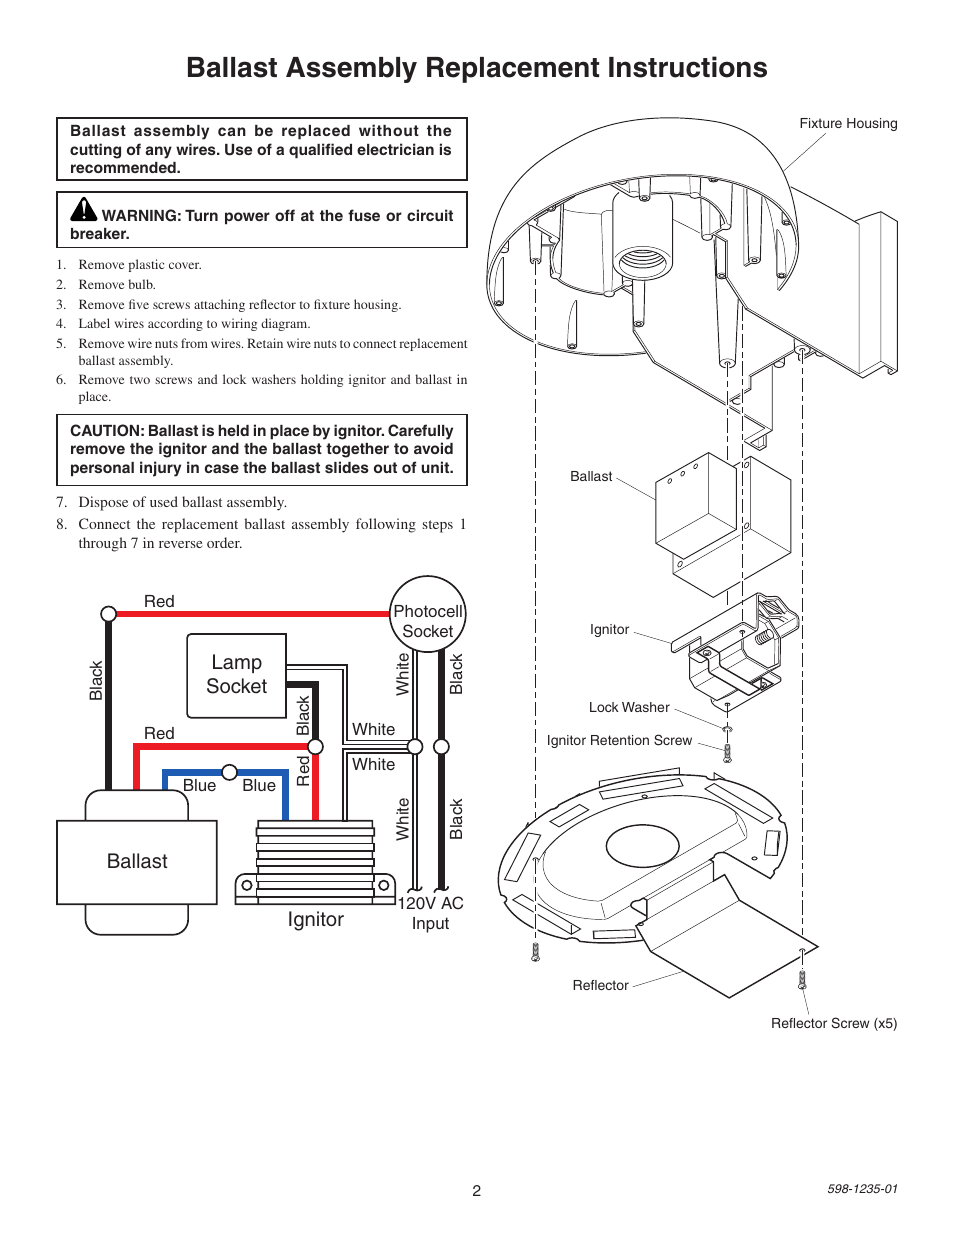 hight resolution of ballast assembly replacement instructions lamp socket ballast ignitor heath zenith sl 5679 user manual page 2 8